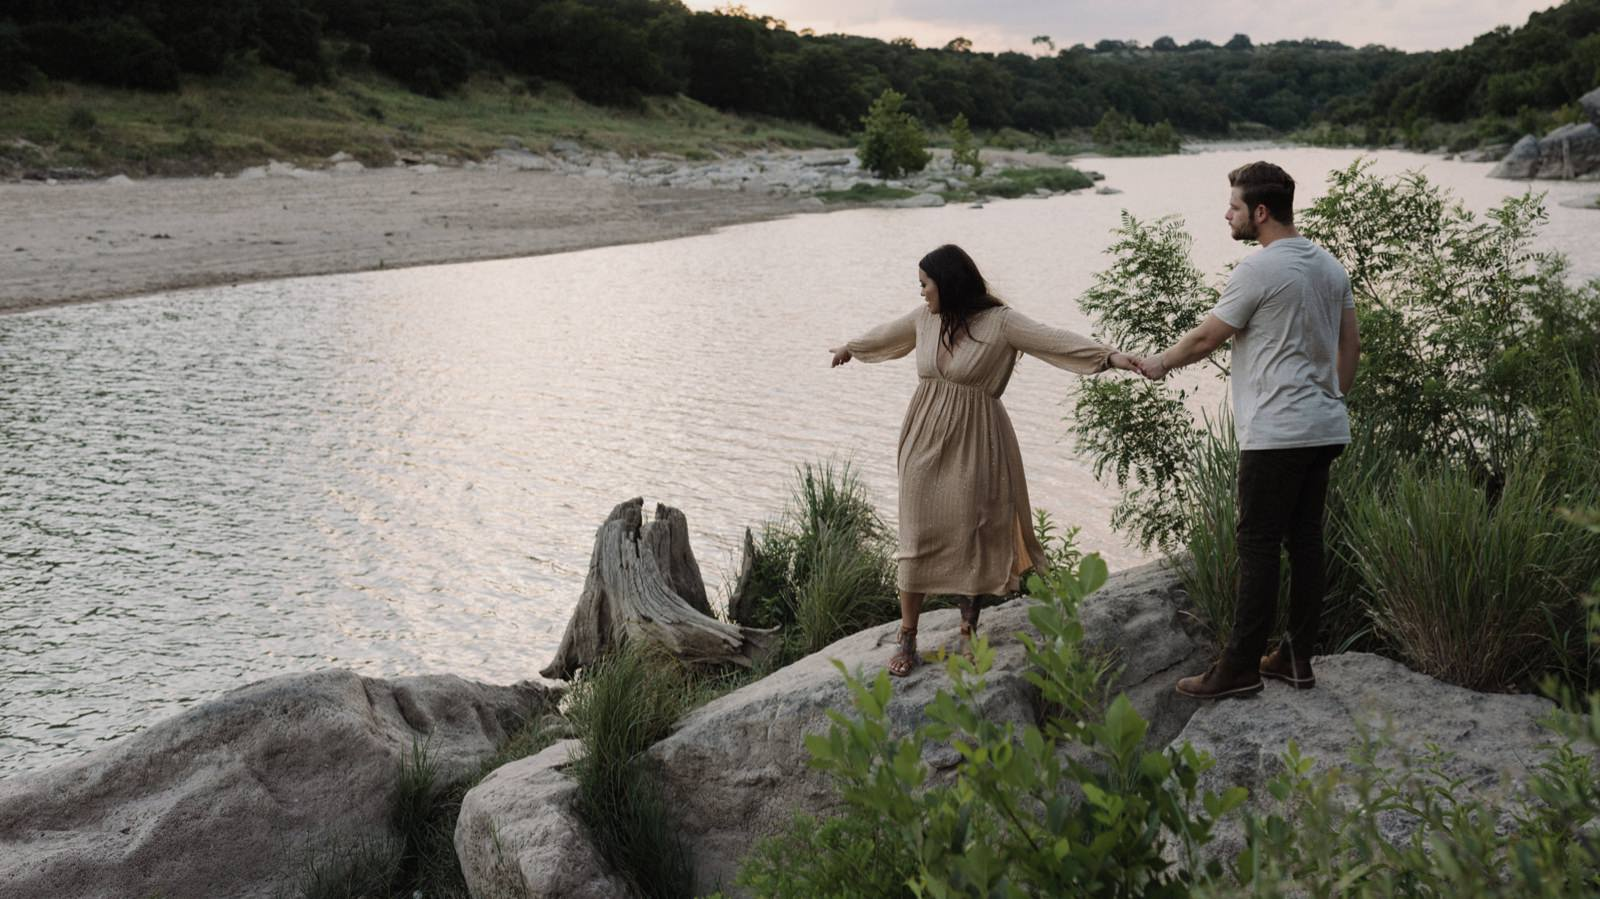 Pedernales Riverside engagement photography session in the Texas Hill Country